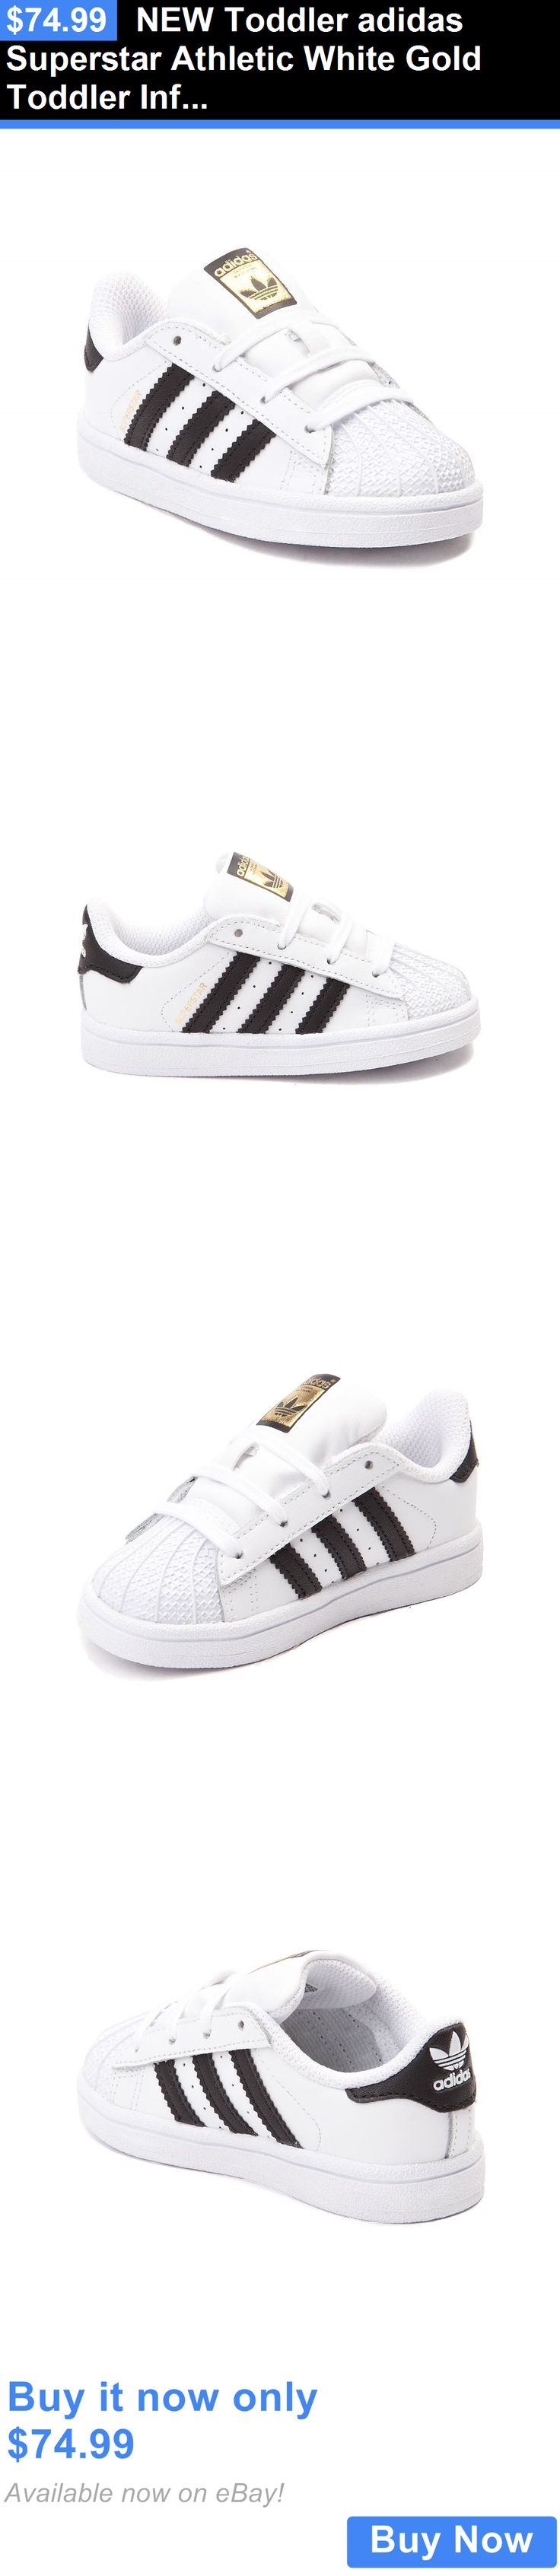 Infant Shoes: New Toddler Adidas Superstar Athletic White Gold Toddler Infant Boys Girl Shoe BUY IT NOW ONLY: $74.99